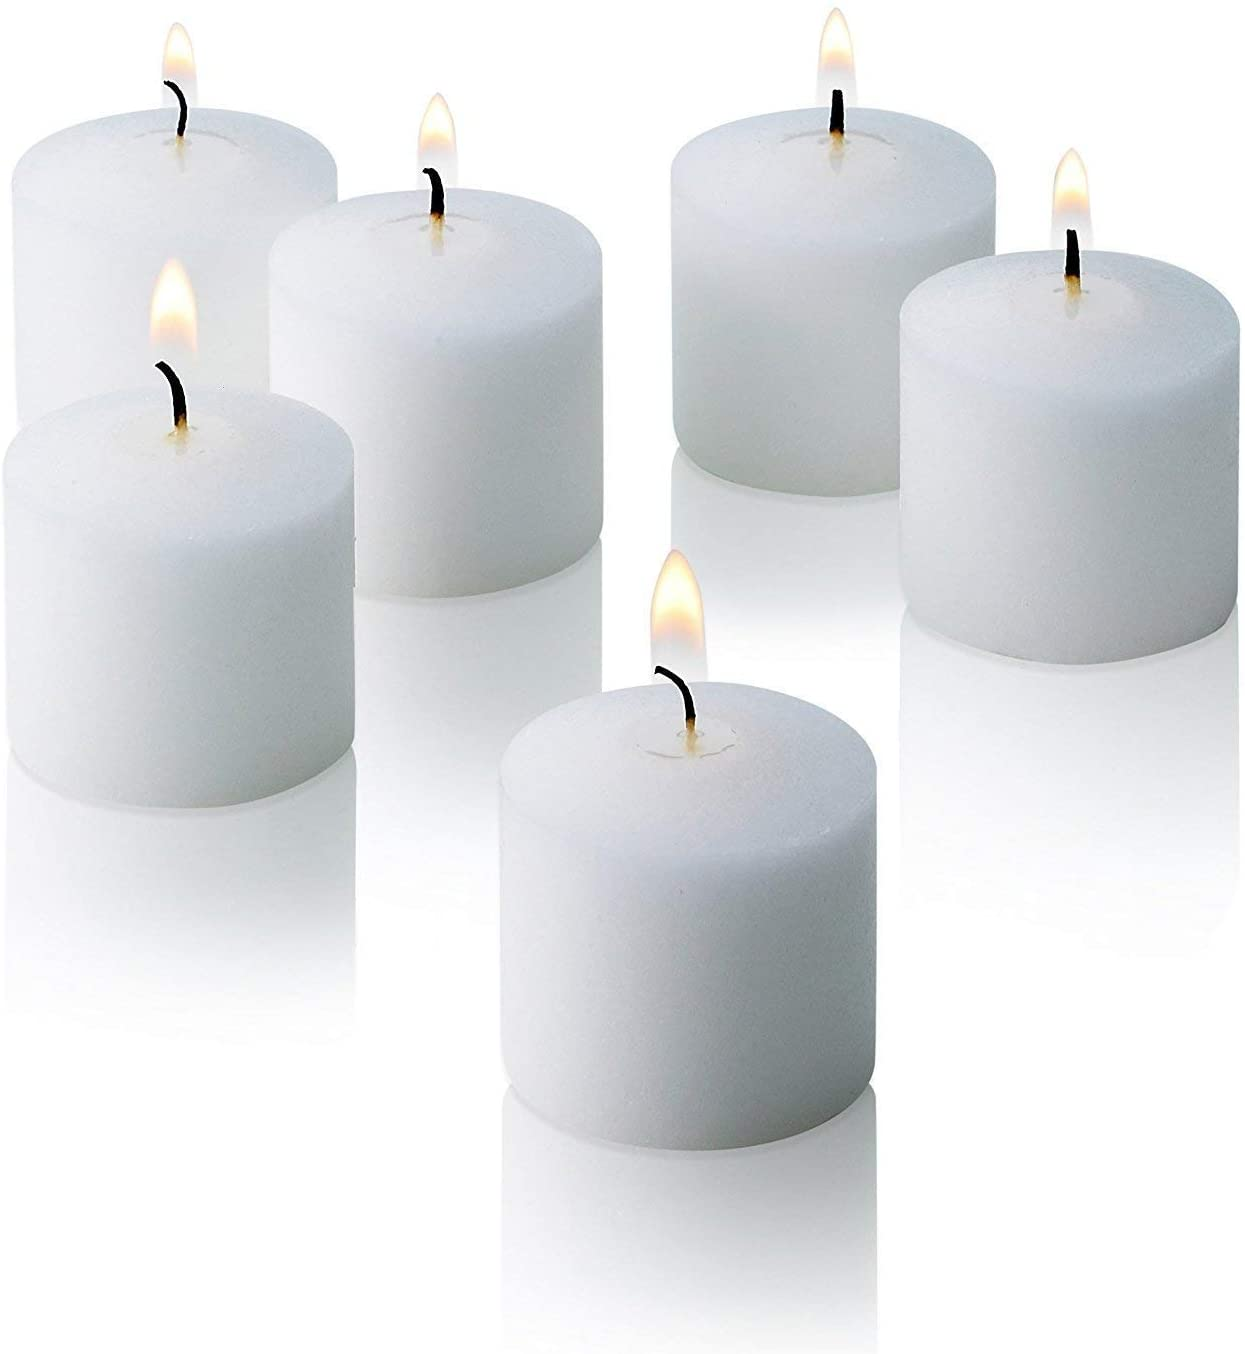 Light In The Dark White Votive Candles - Box of 72 Unscented Candles - 10 Hour Burn Time - Bulk Candles for Weddings, Parties, Spas and Decorations